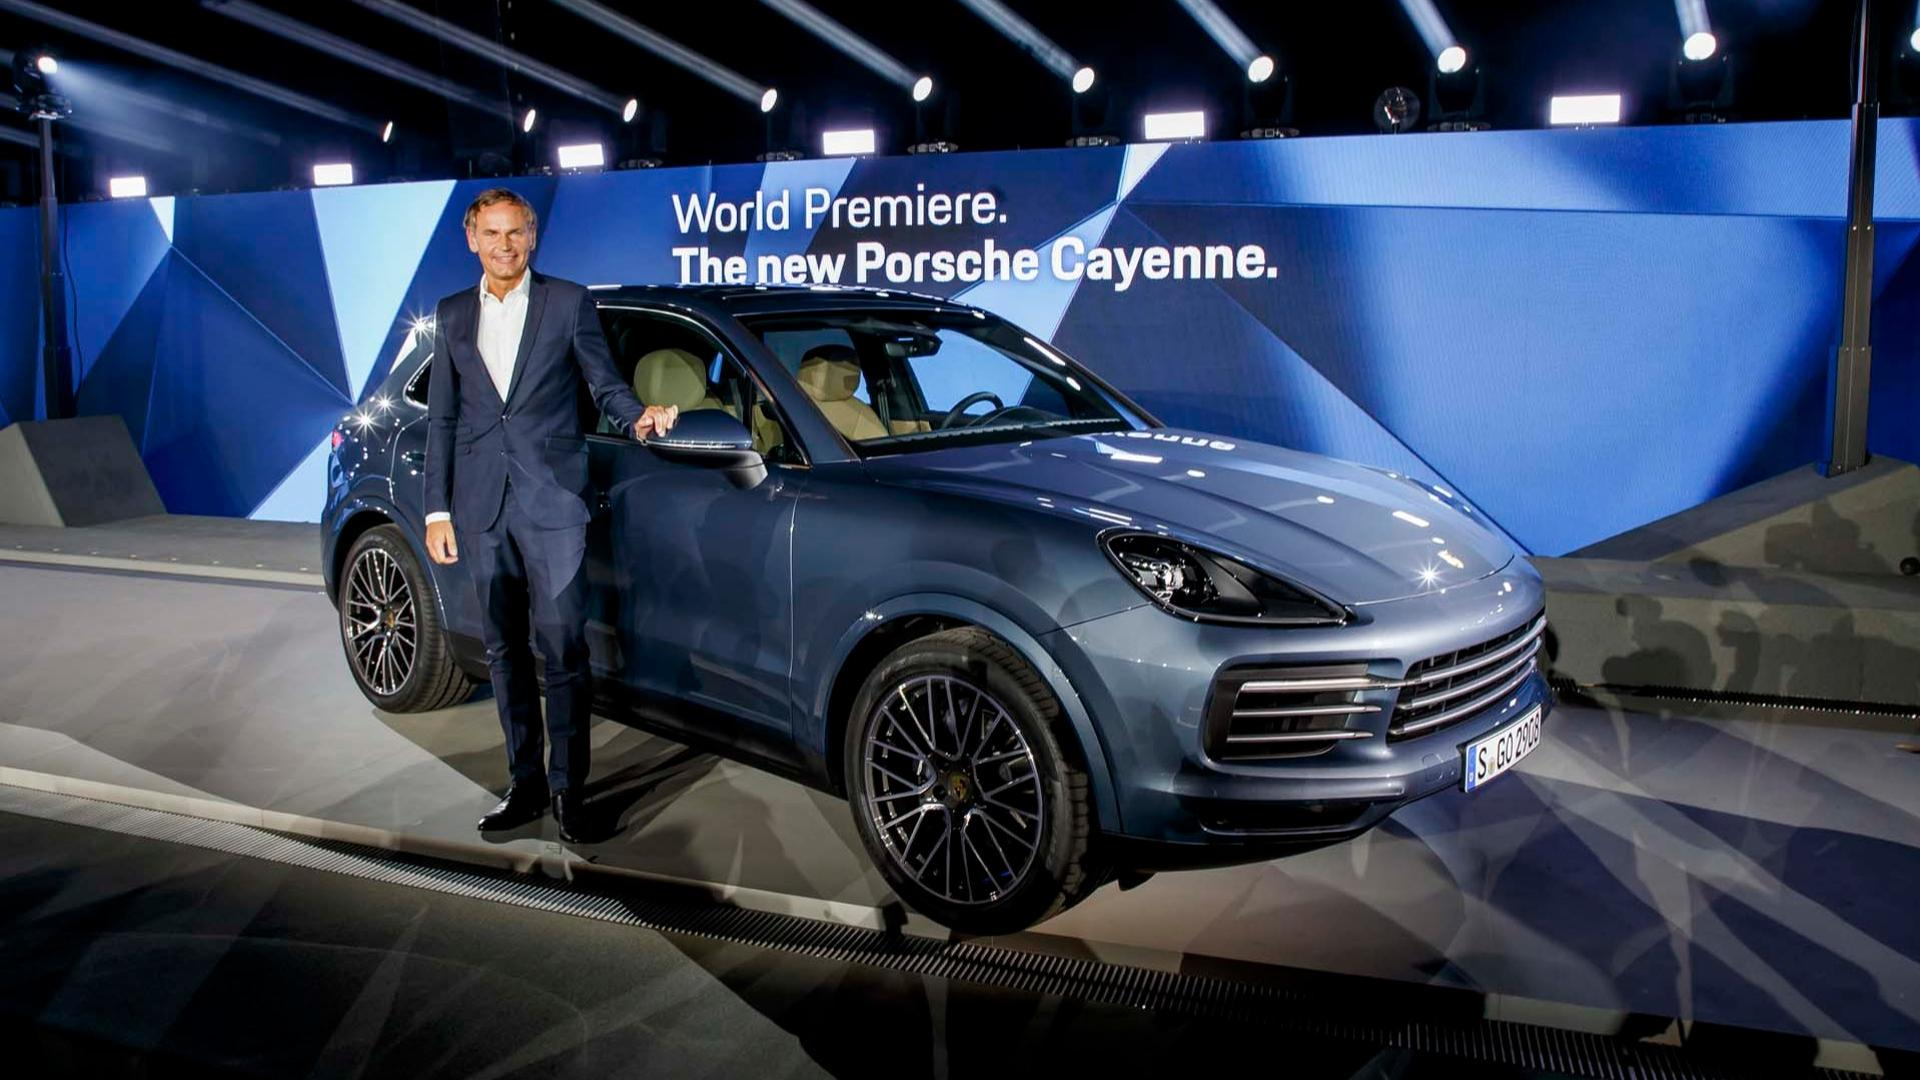 2019 Porsche Cayenne Debuts Sleeker Look, Sheds Weight